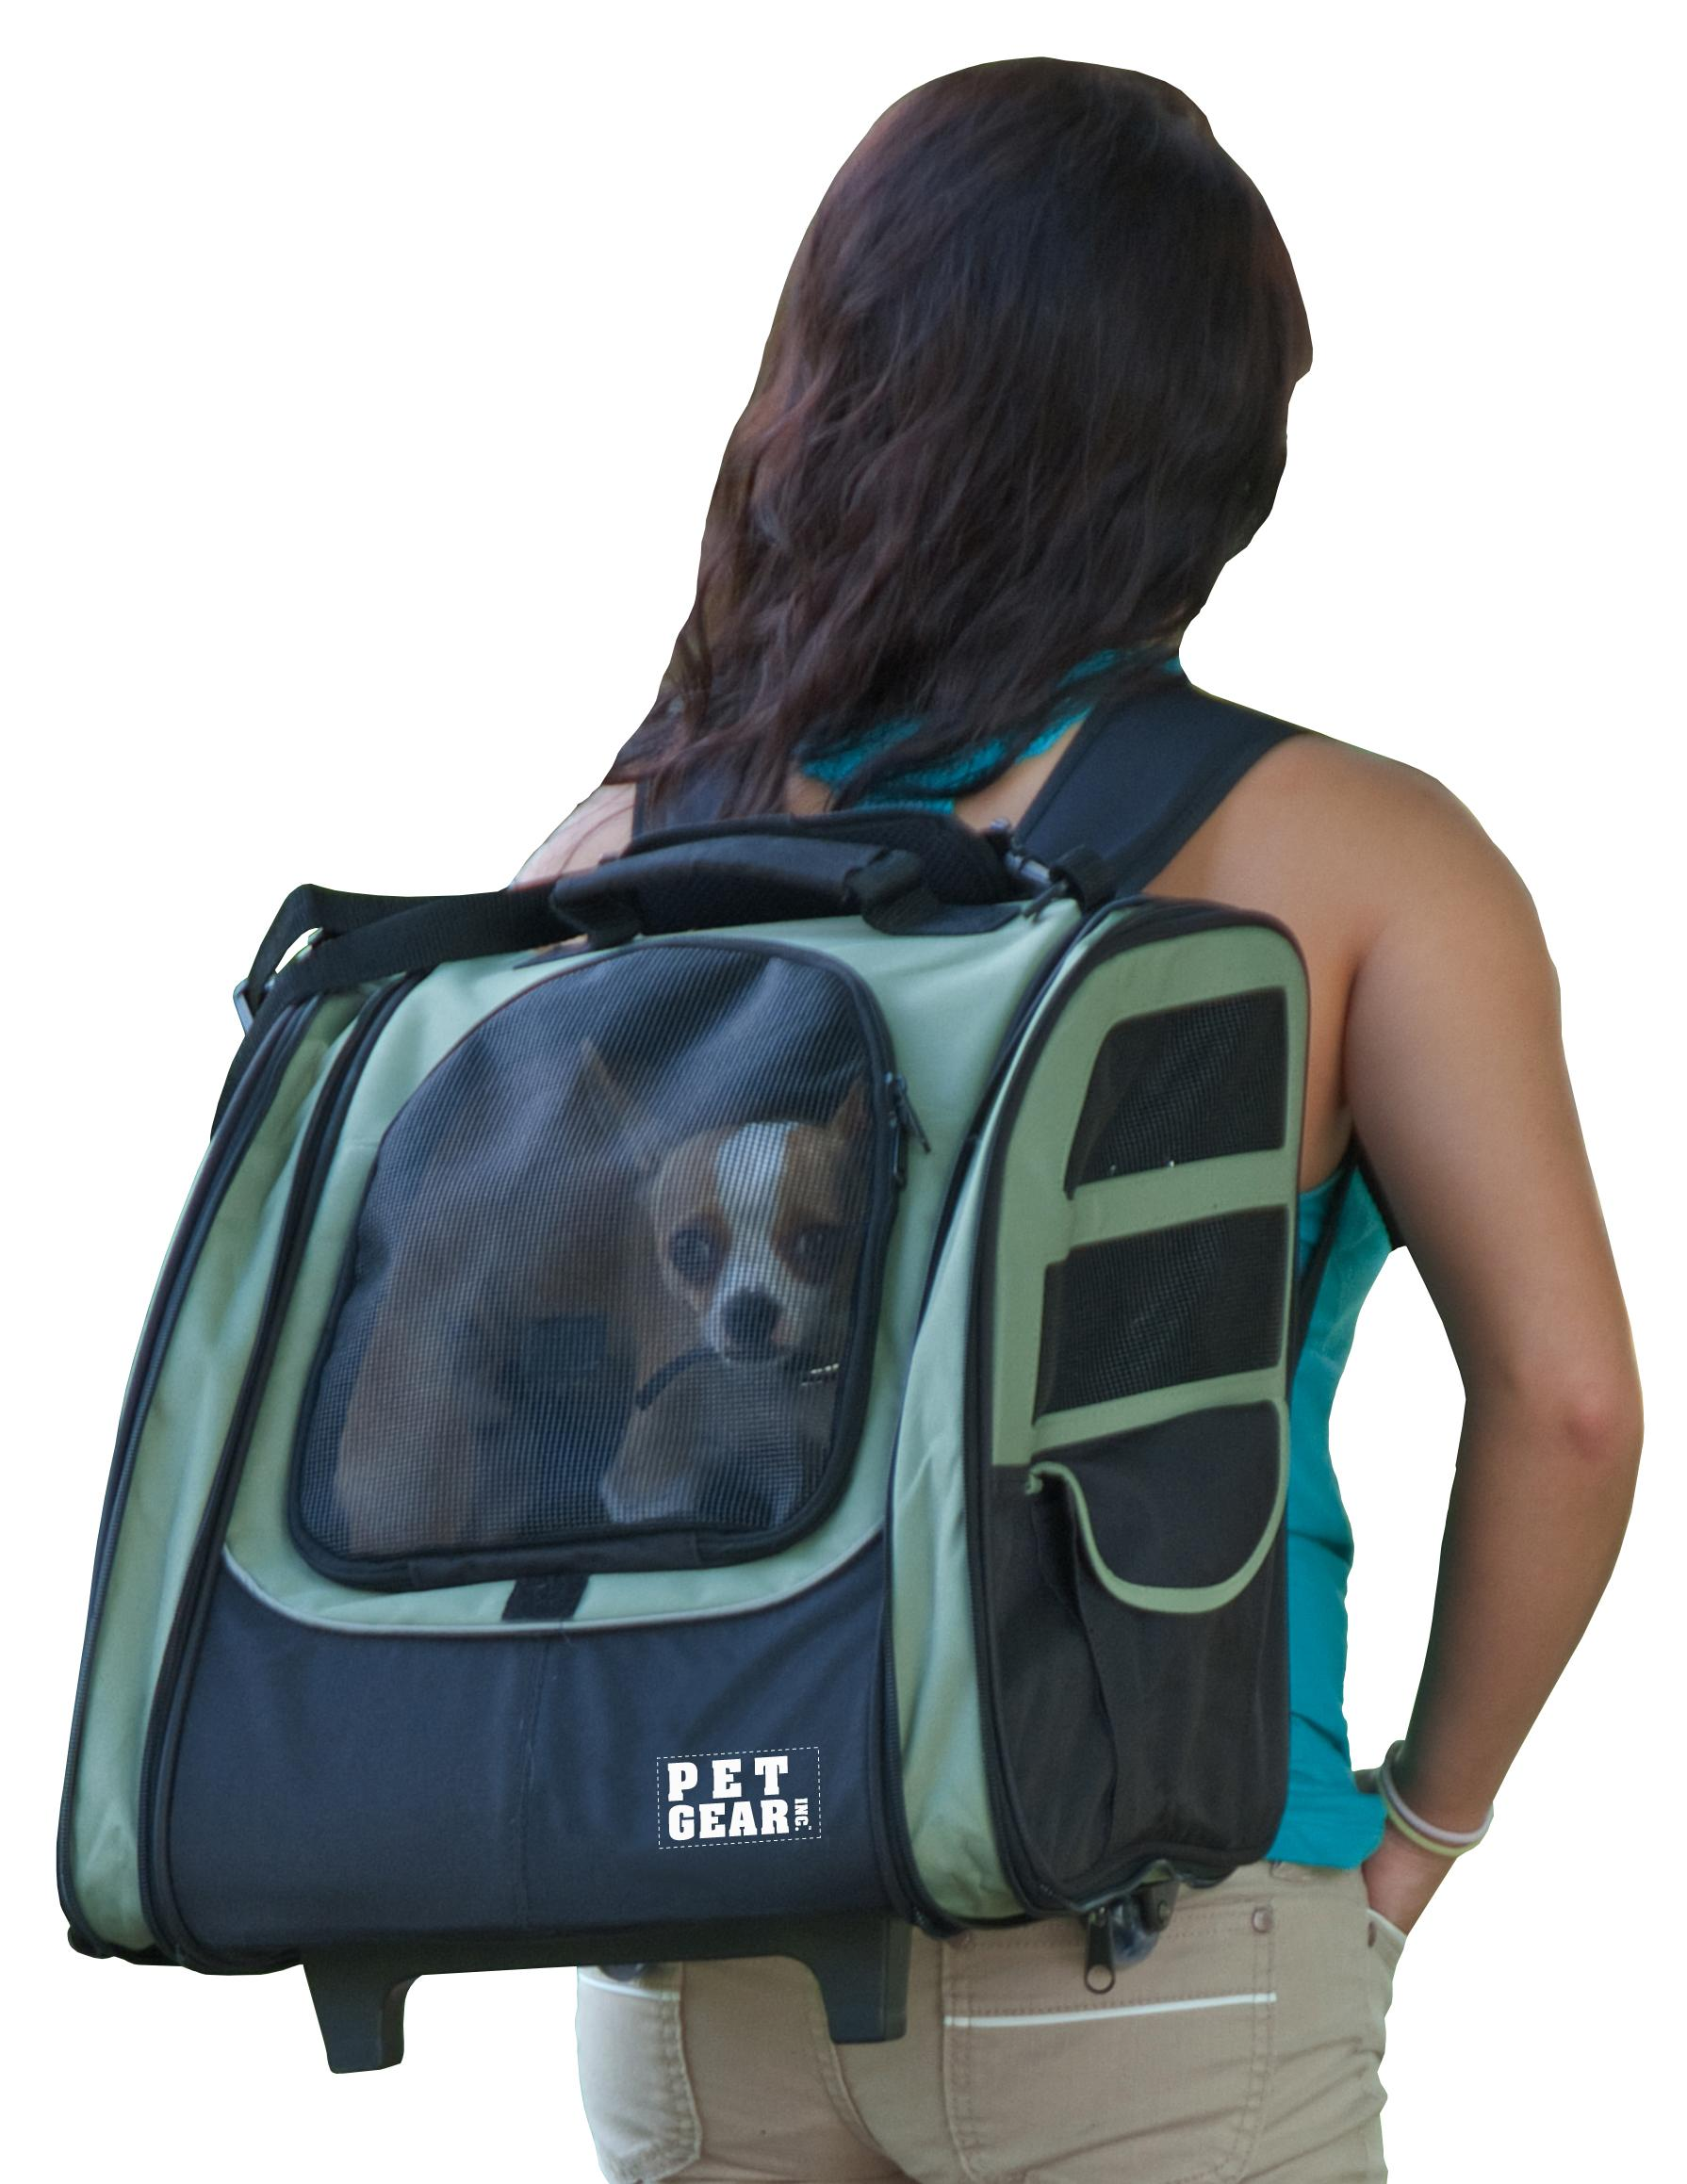 pet gear i go2 roller backpack travel carrier car seat for cats dogs mesh. Black Bedroom Furniture Sets. Home Design Ideas